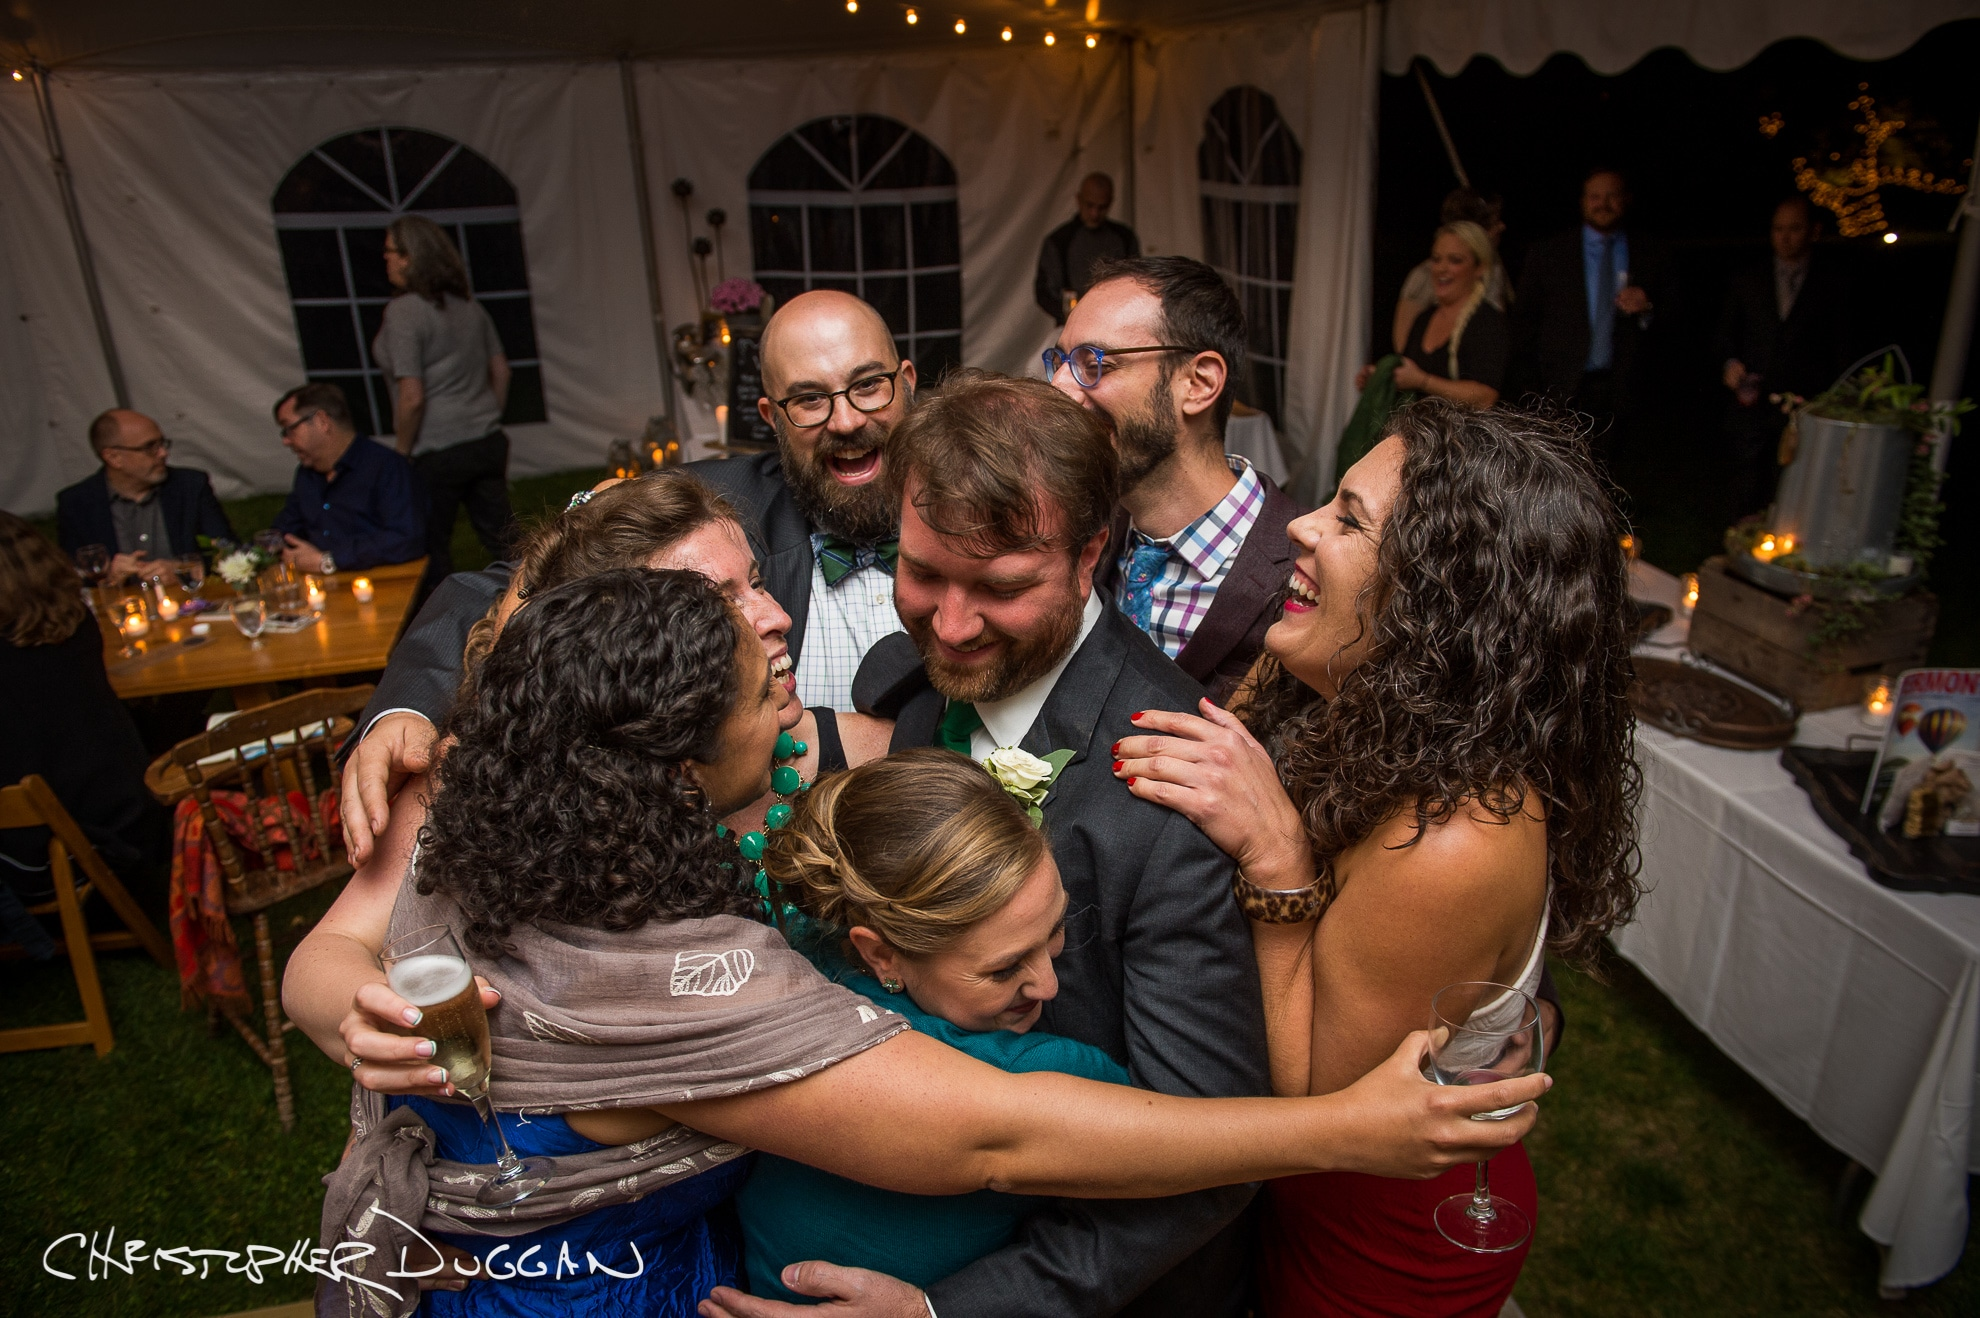 Kate & Evan's Wedding Photos at Red Clover Inn & Restaurant in Vermont. Photo Credit: Christopher Duggan